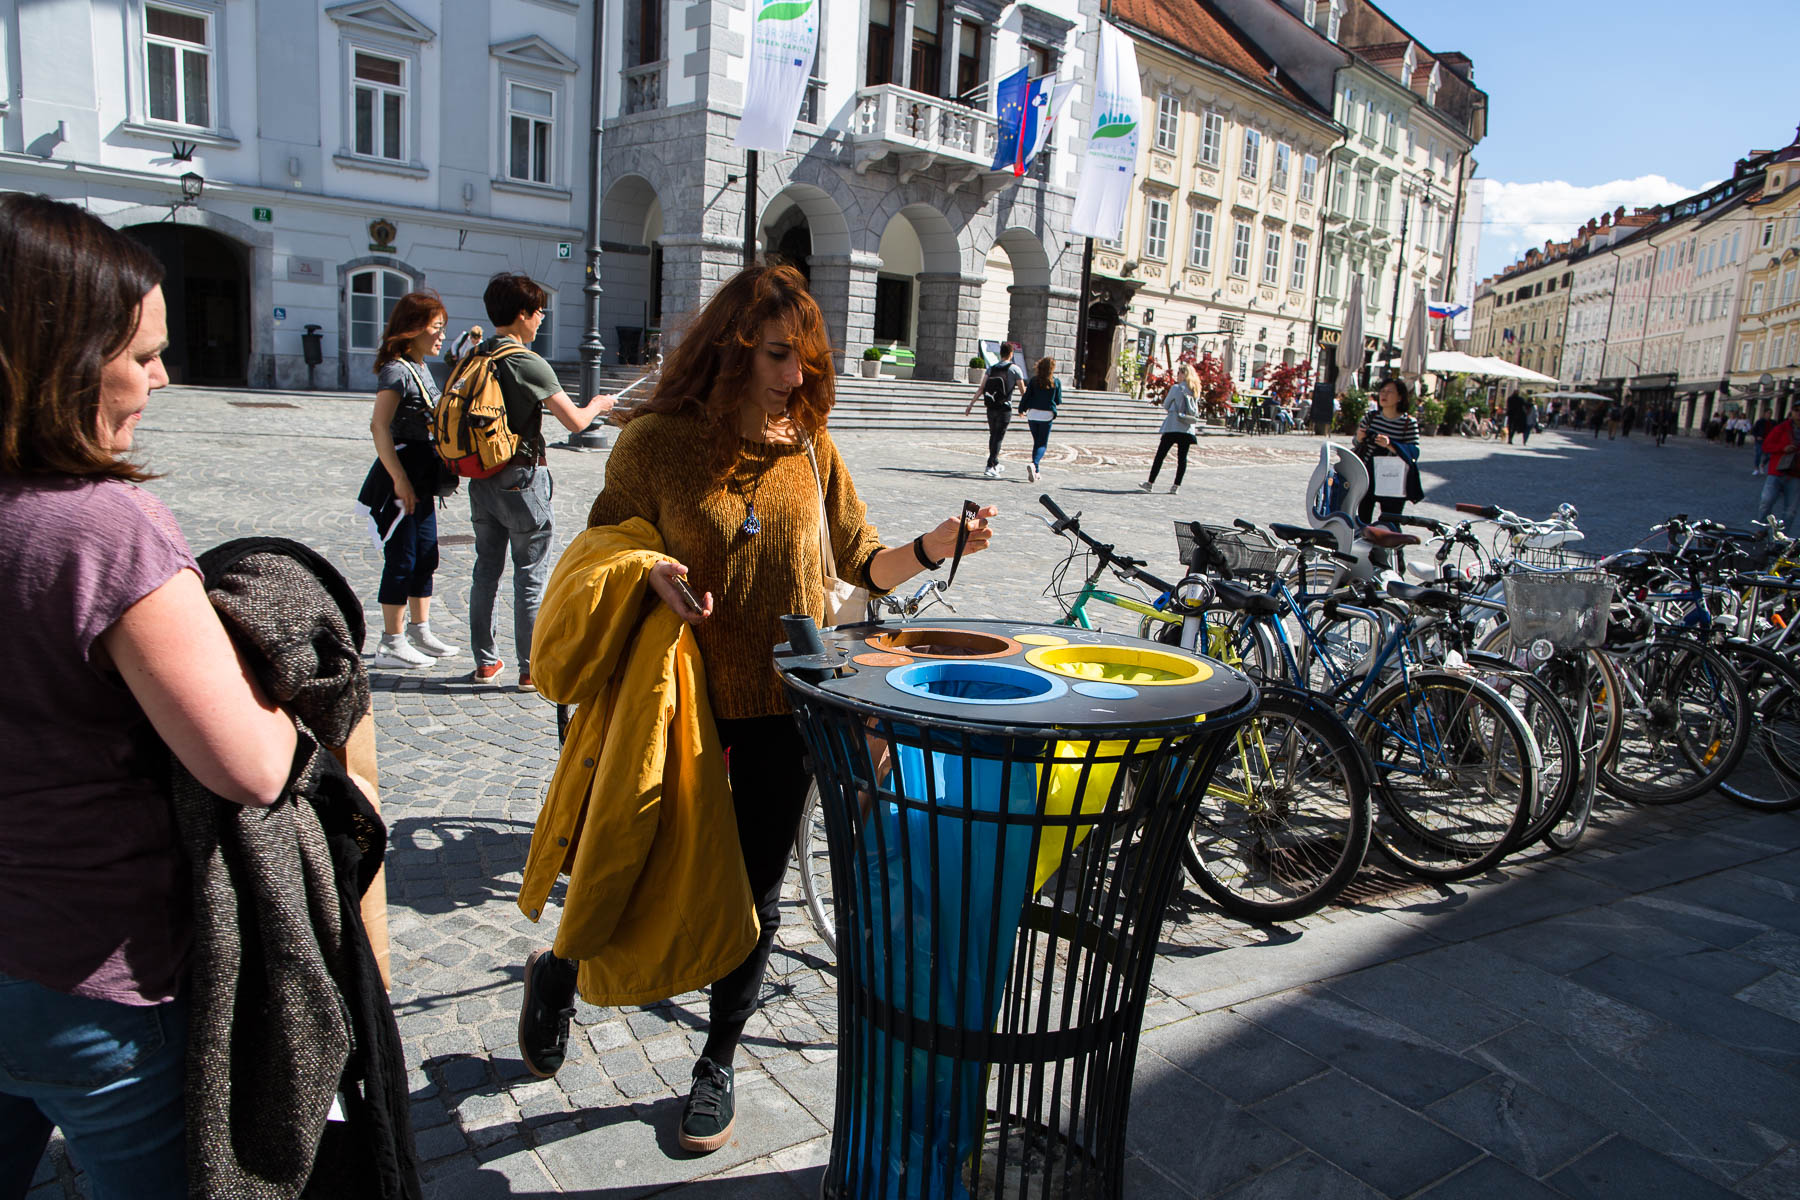 Waste bins containing seperate bags for paper, packaging and biodegradable waste are very frequent in the old city center of Ljubljana that welcomes the highest number of tourists. In 2018, the number of overnight stays in Ljubljana reached over a million and a half - first time in history.